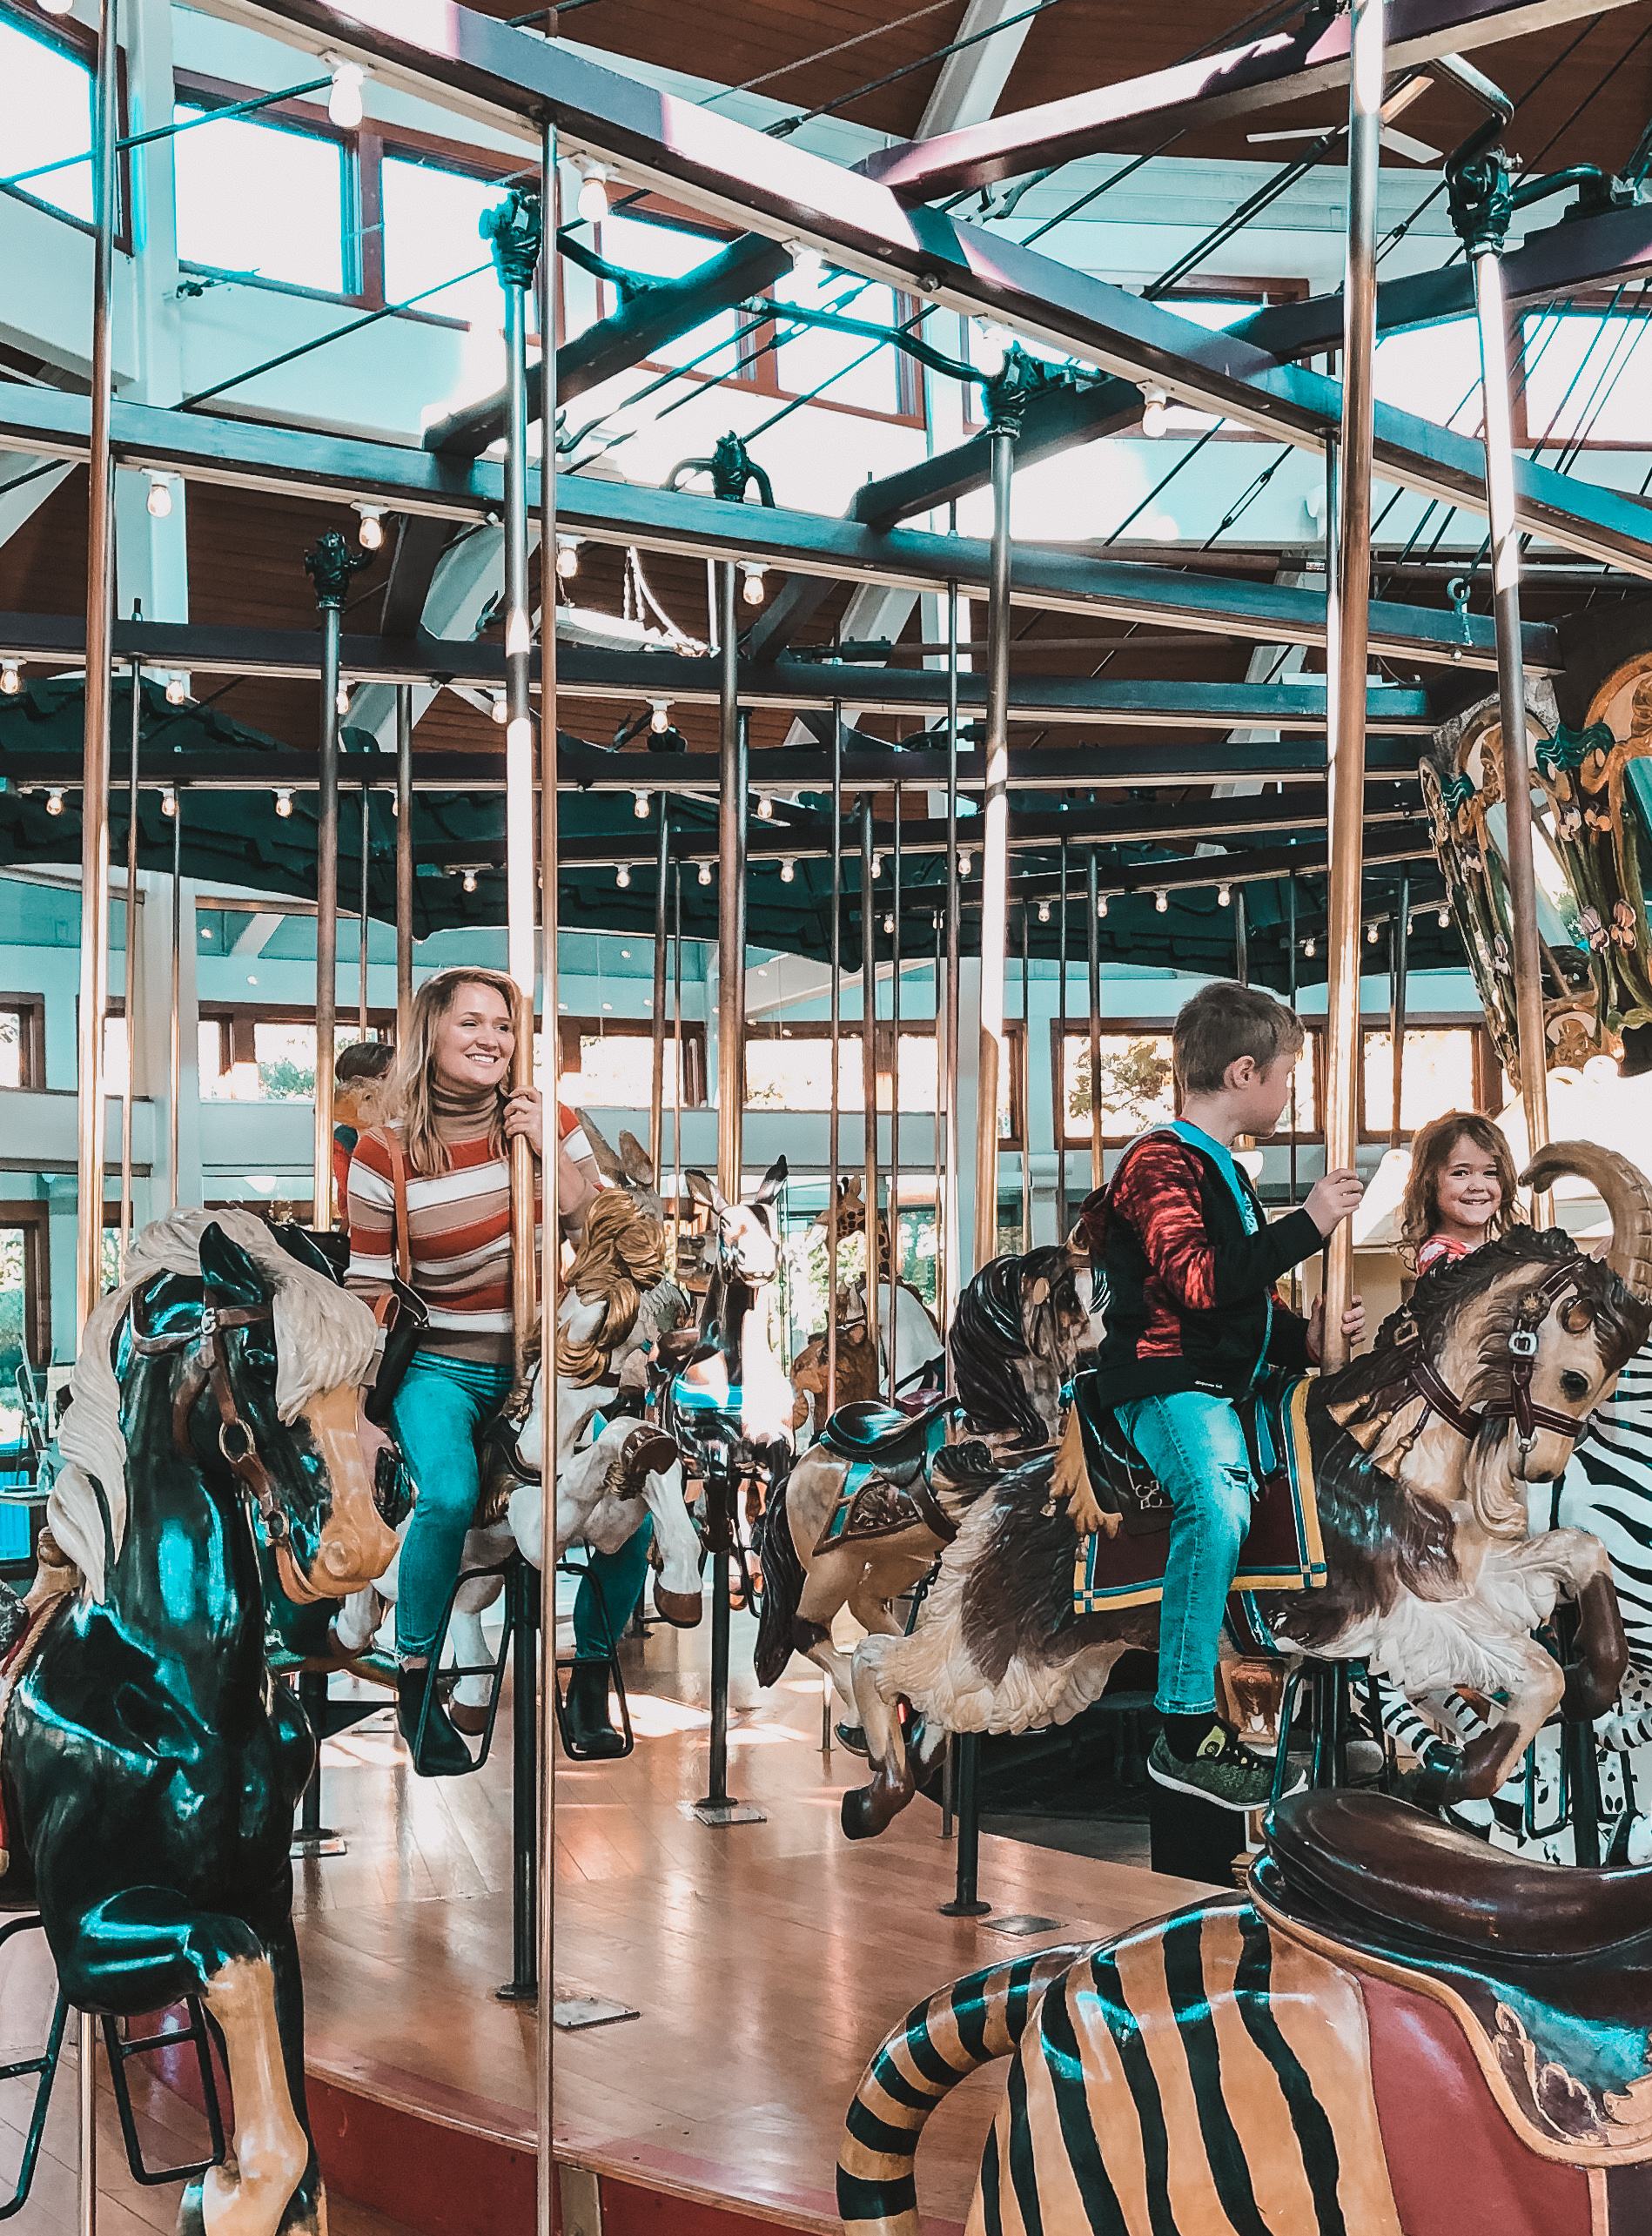 Coolidge Park Antique Carousel, Chattanooga TN